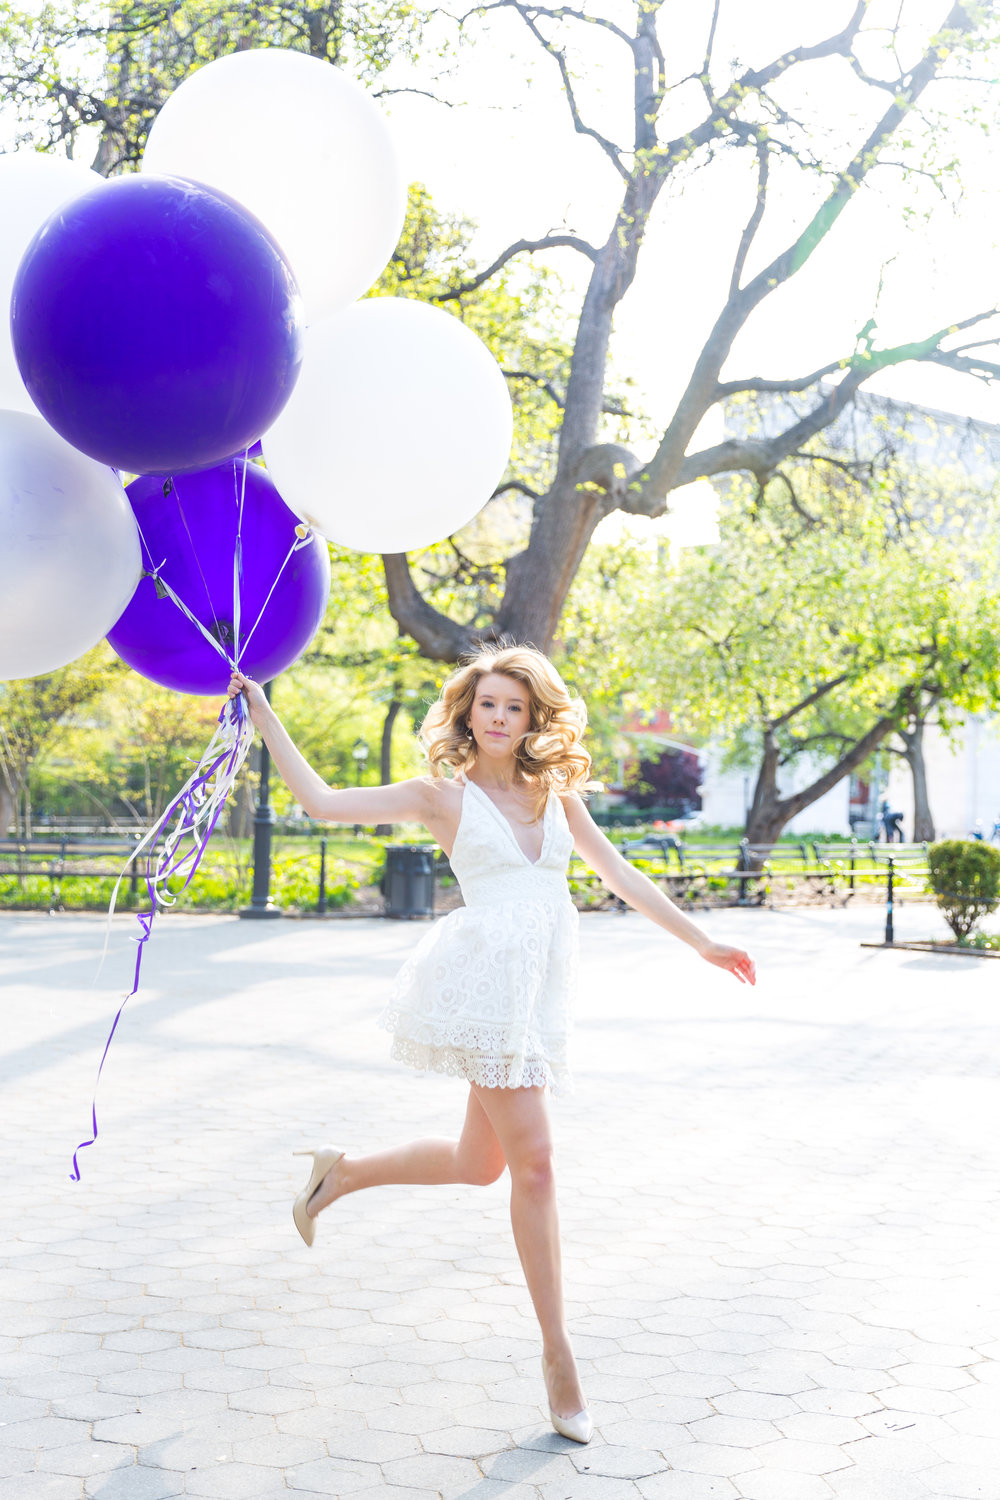 White Graduation Dress Spring NYC-7.jpg